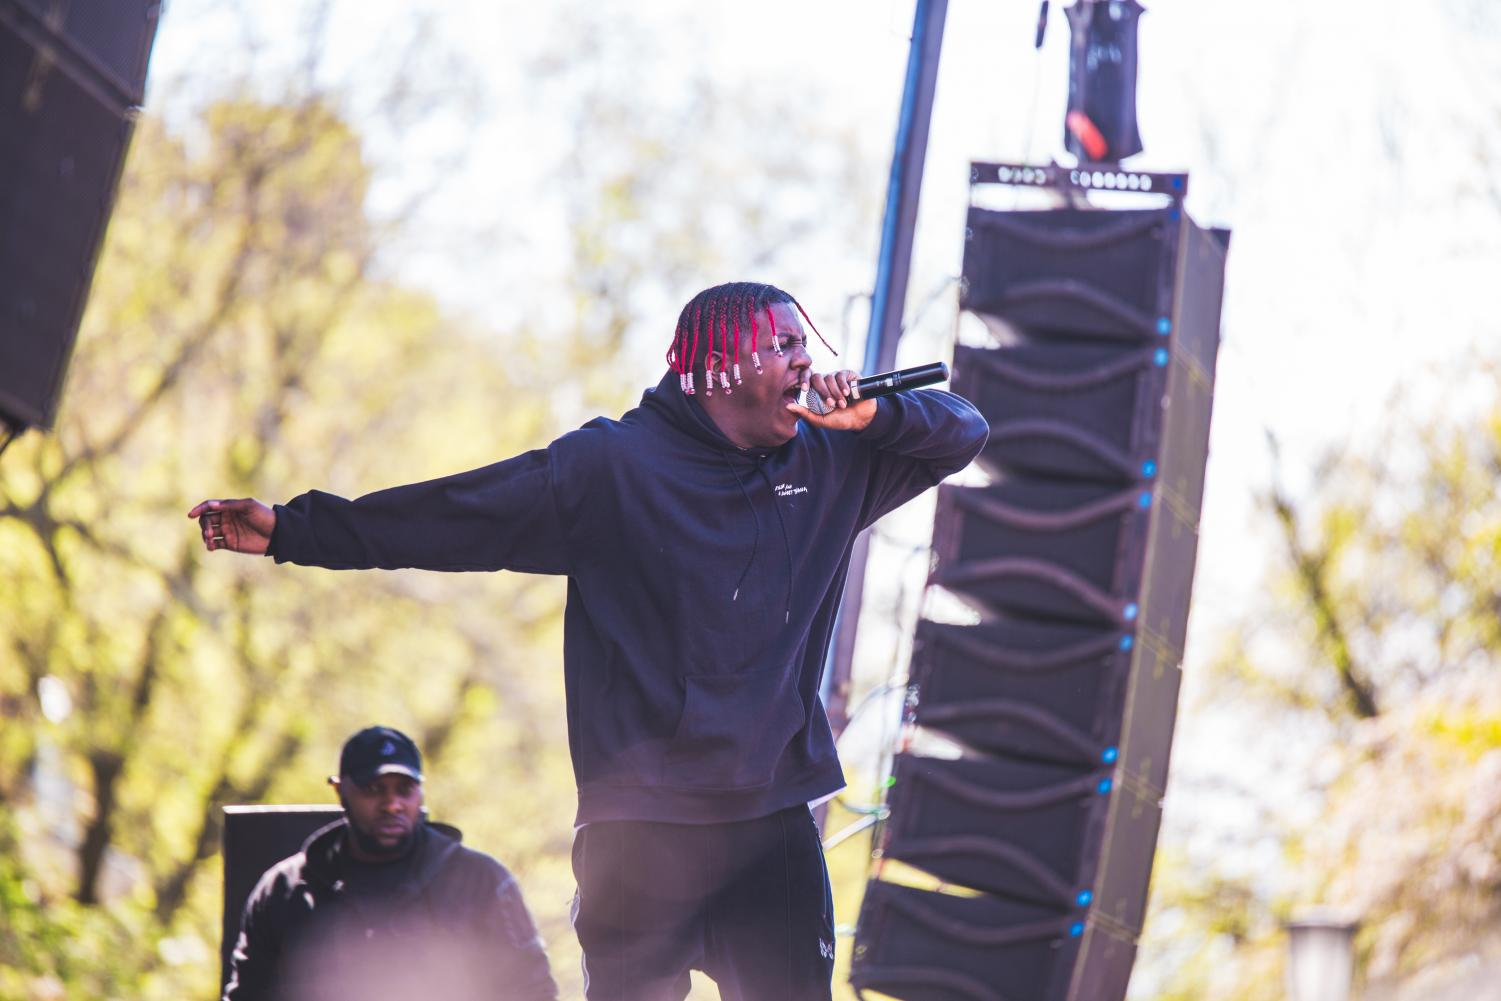 Lil+Yachty+Performs+at+Spring+Jam+2019